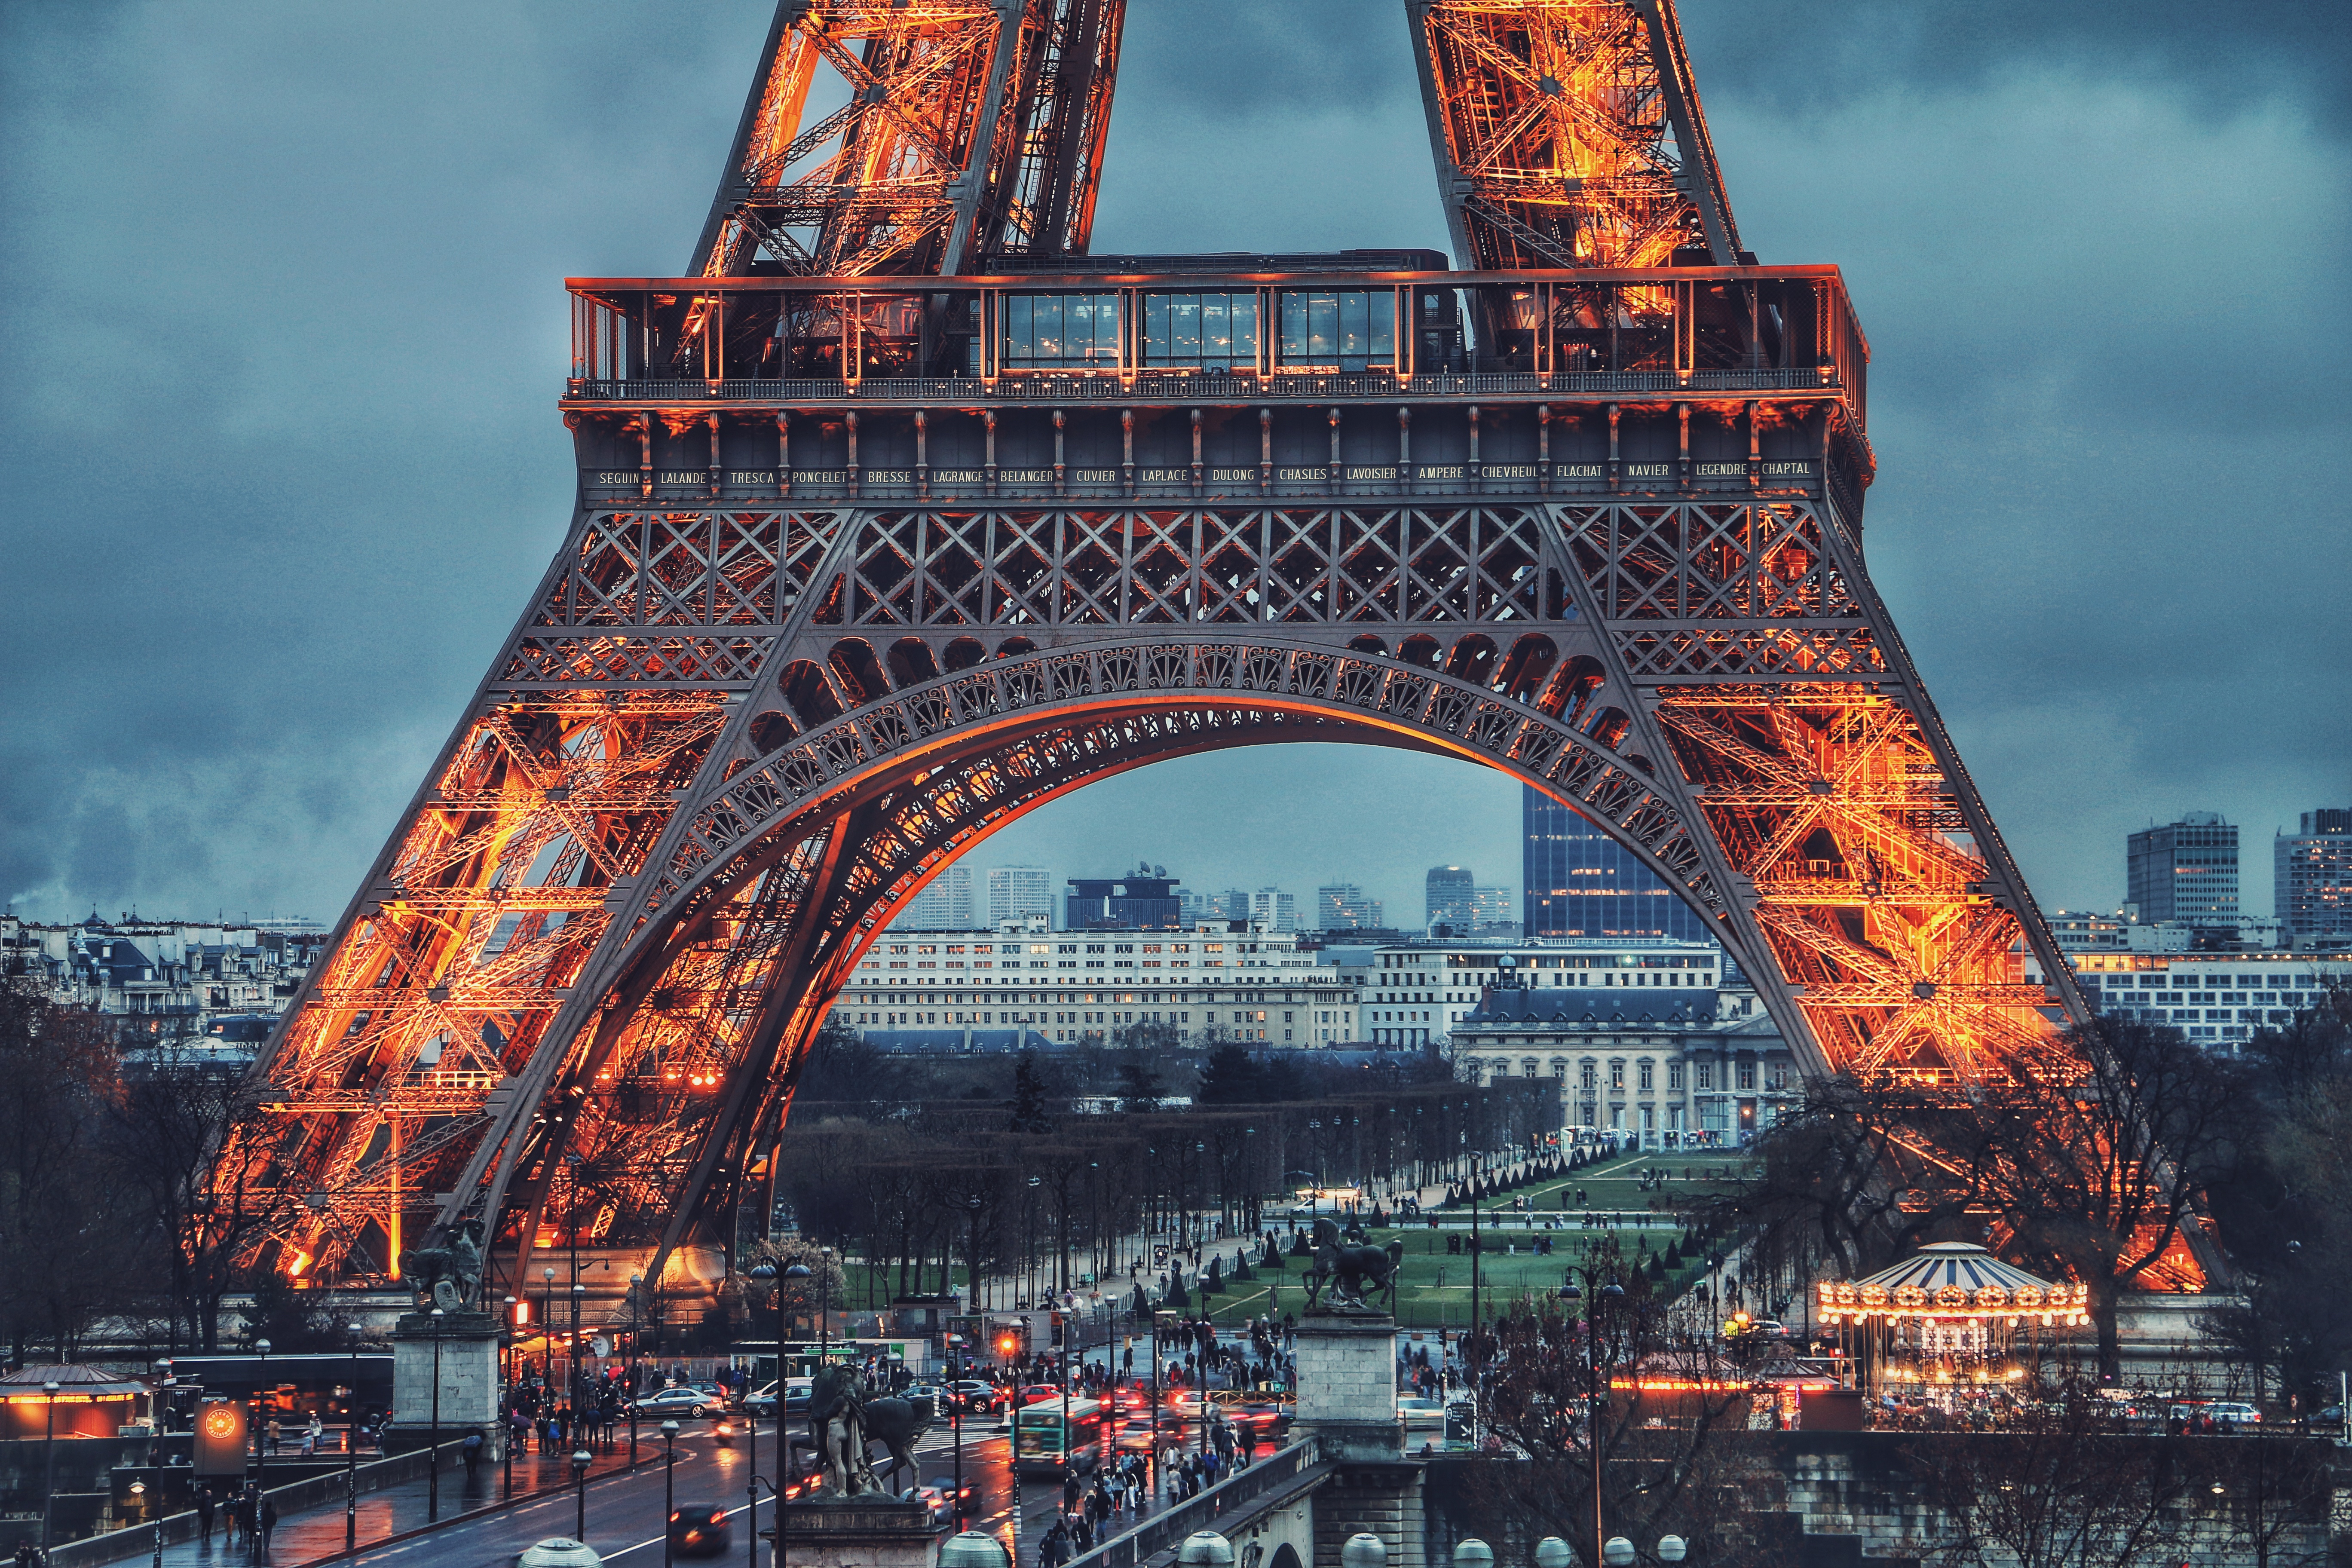 Eiffel tower Paris France Light